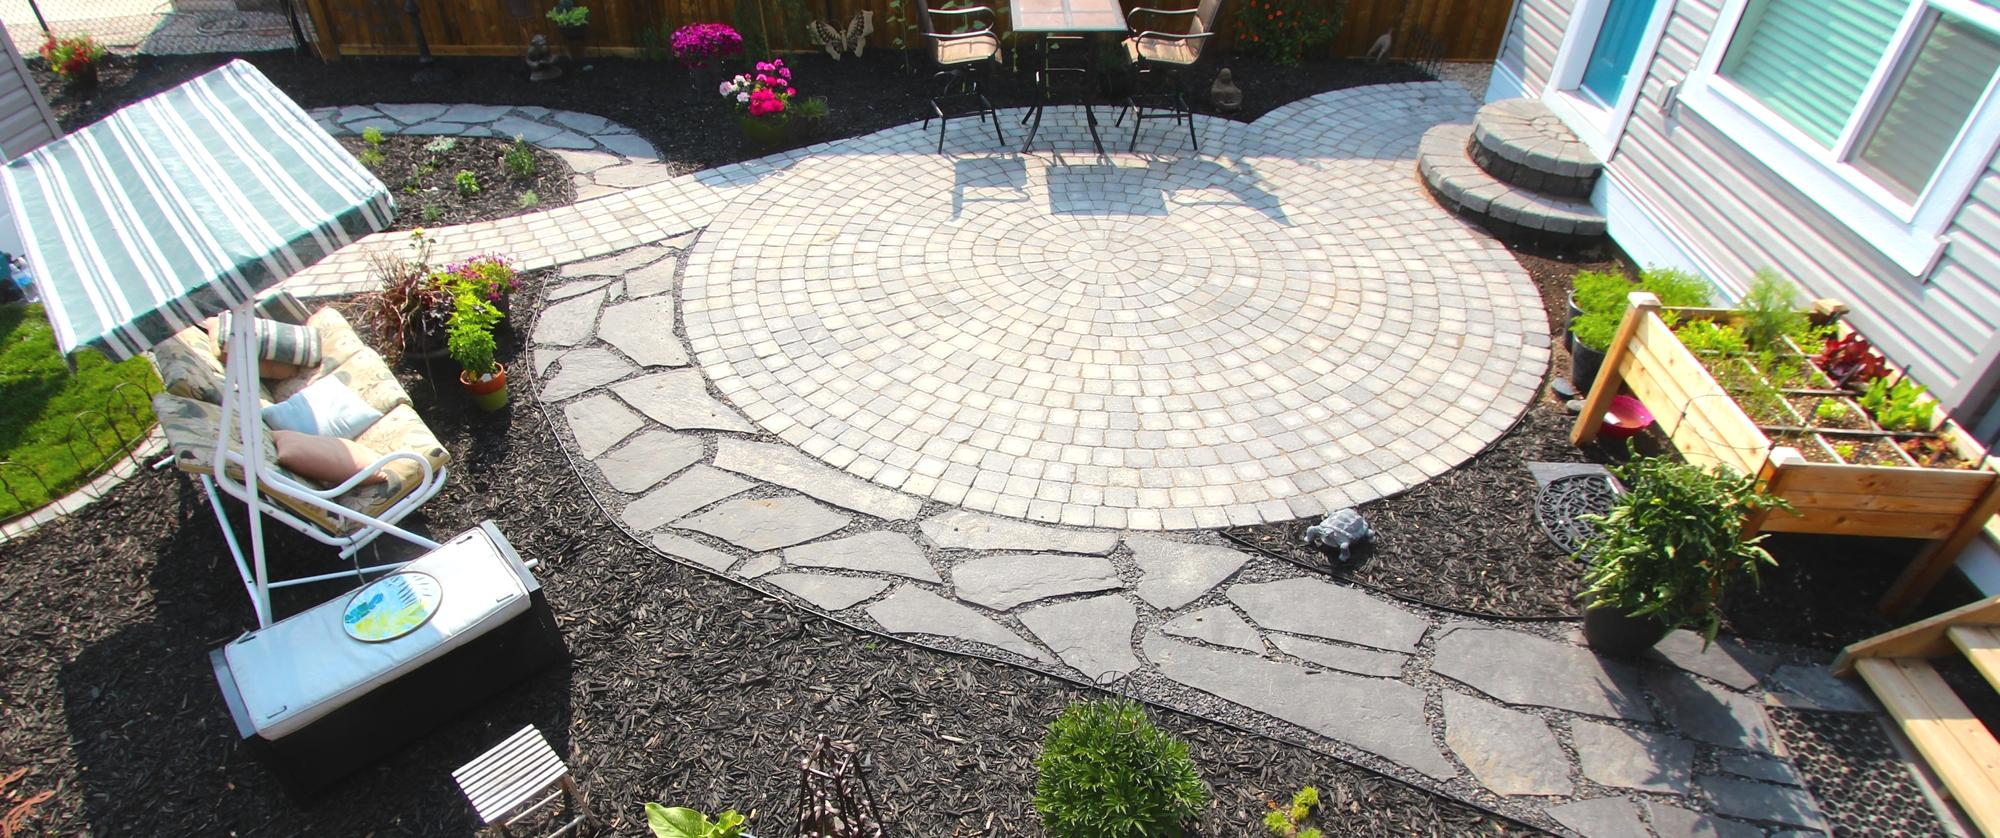 paving stone patio, paving stone pathway, flagstone pathway, mulch beds